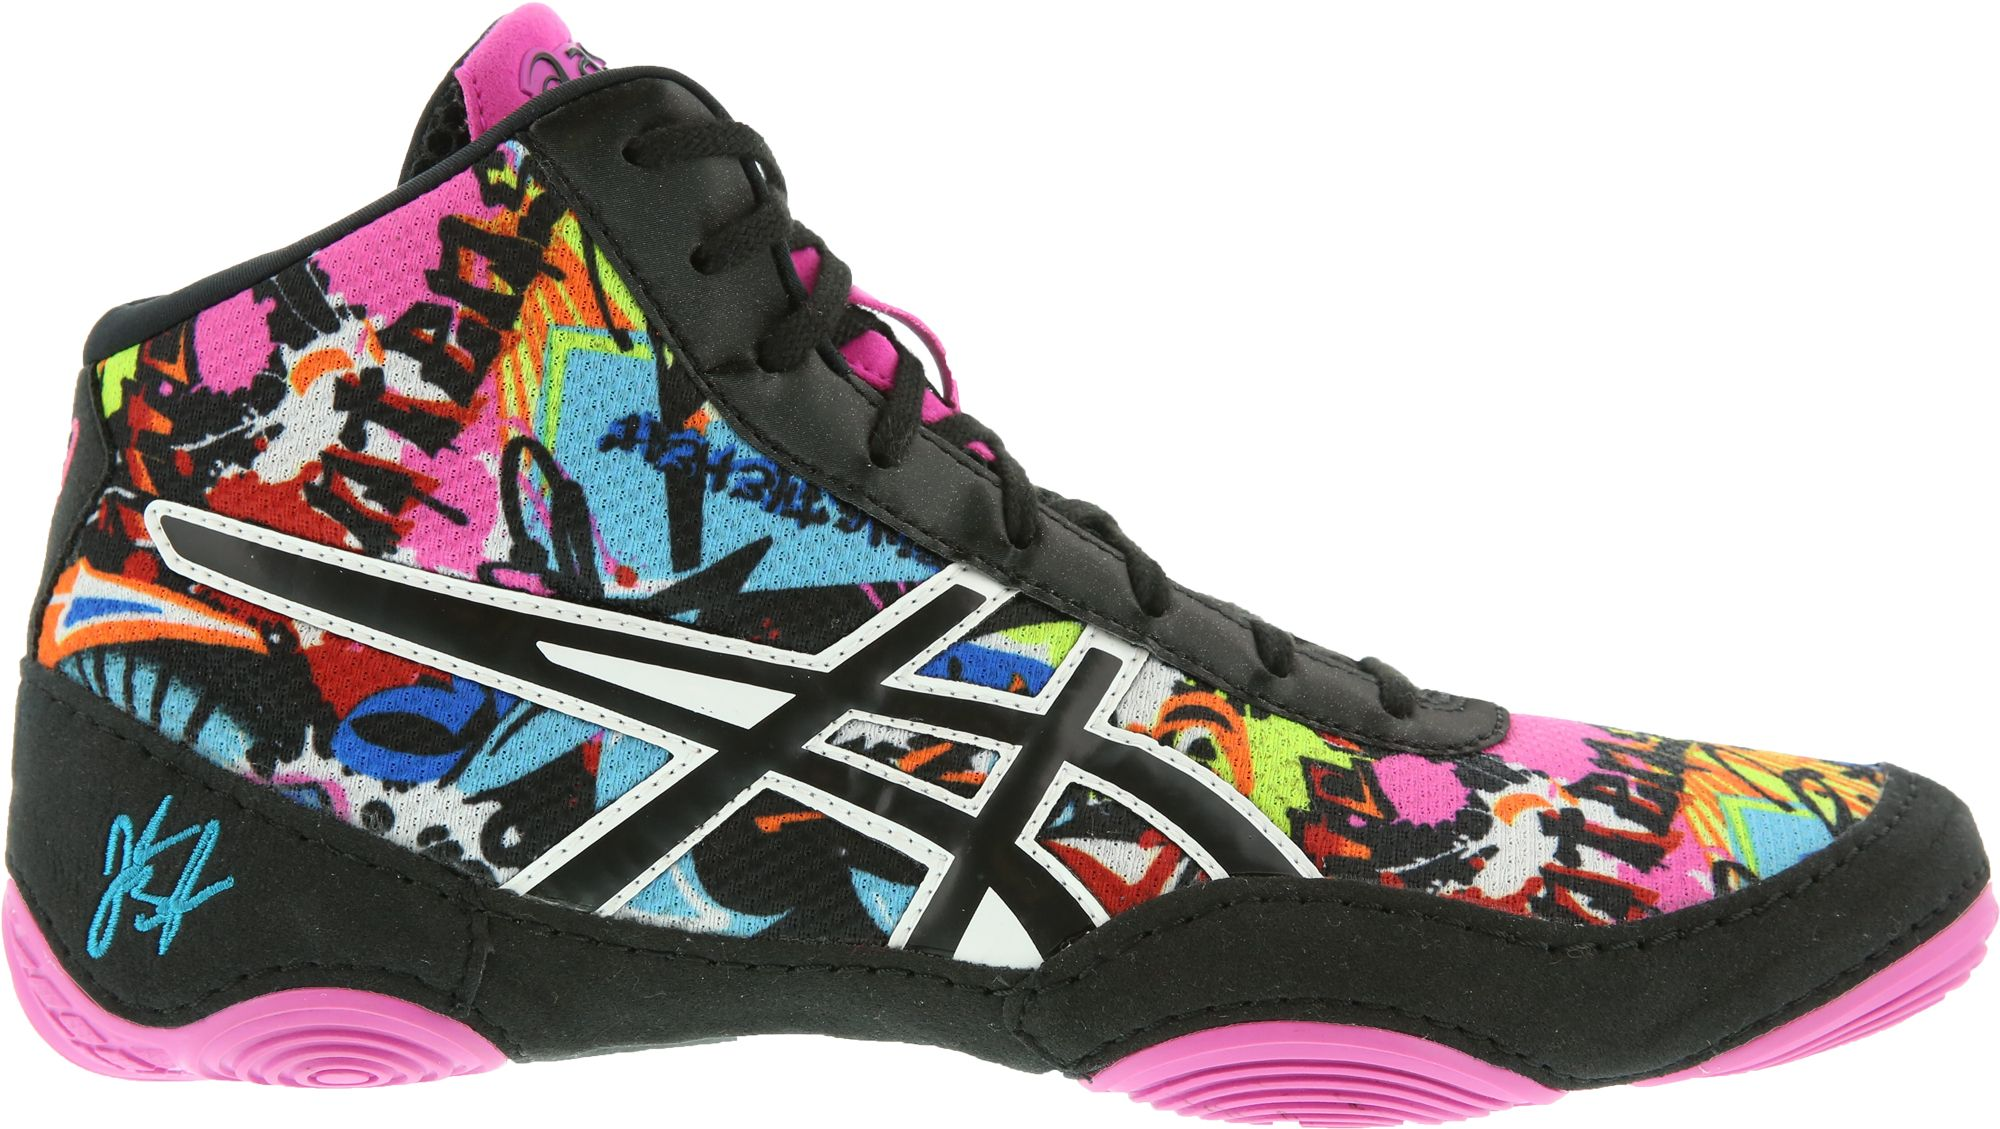 asics Wrestling Shoes | DICK'S Sporting Goods